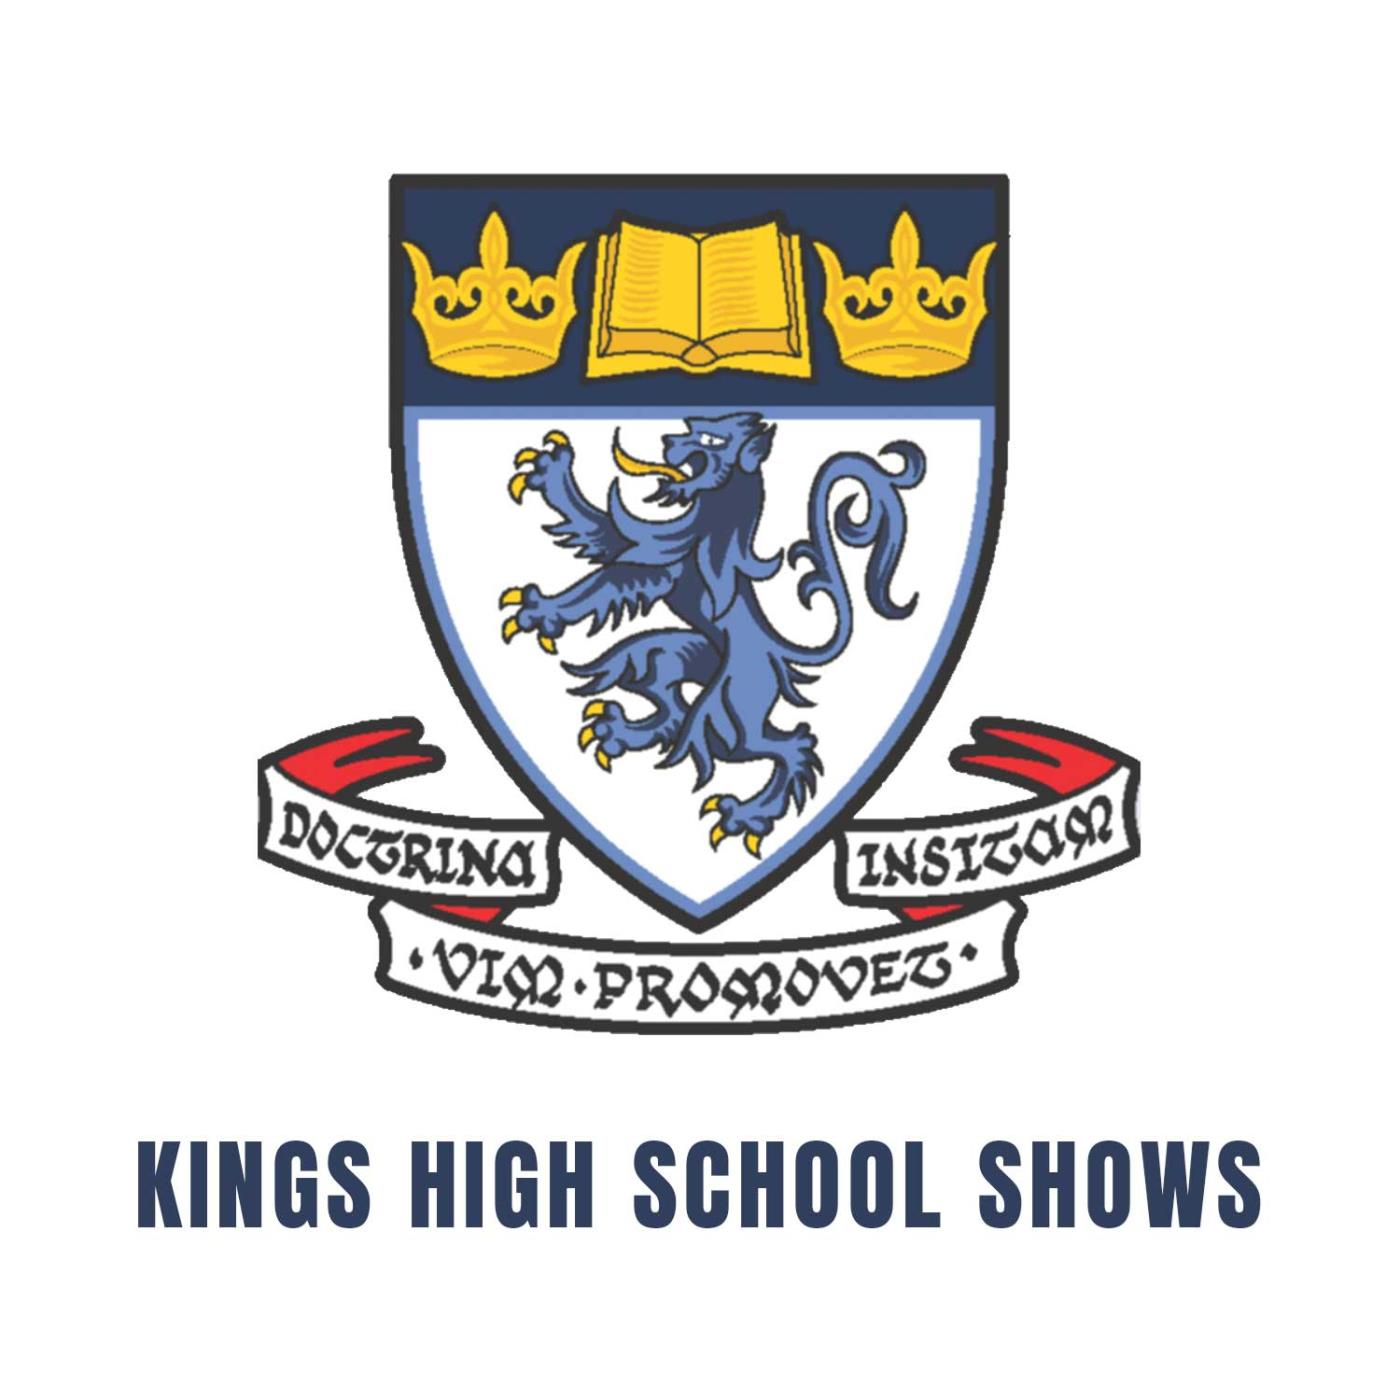 Kings High School Shows